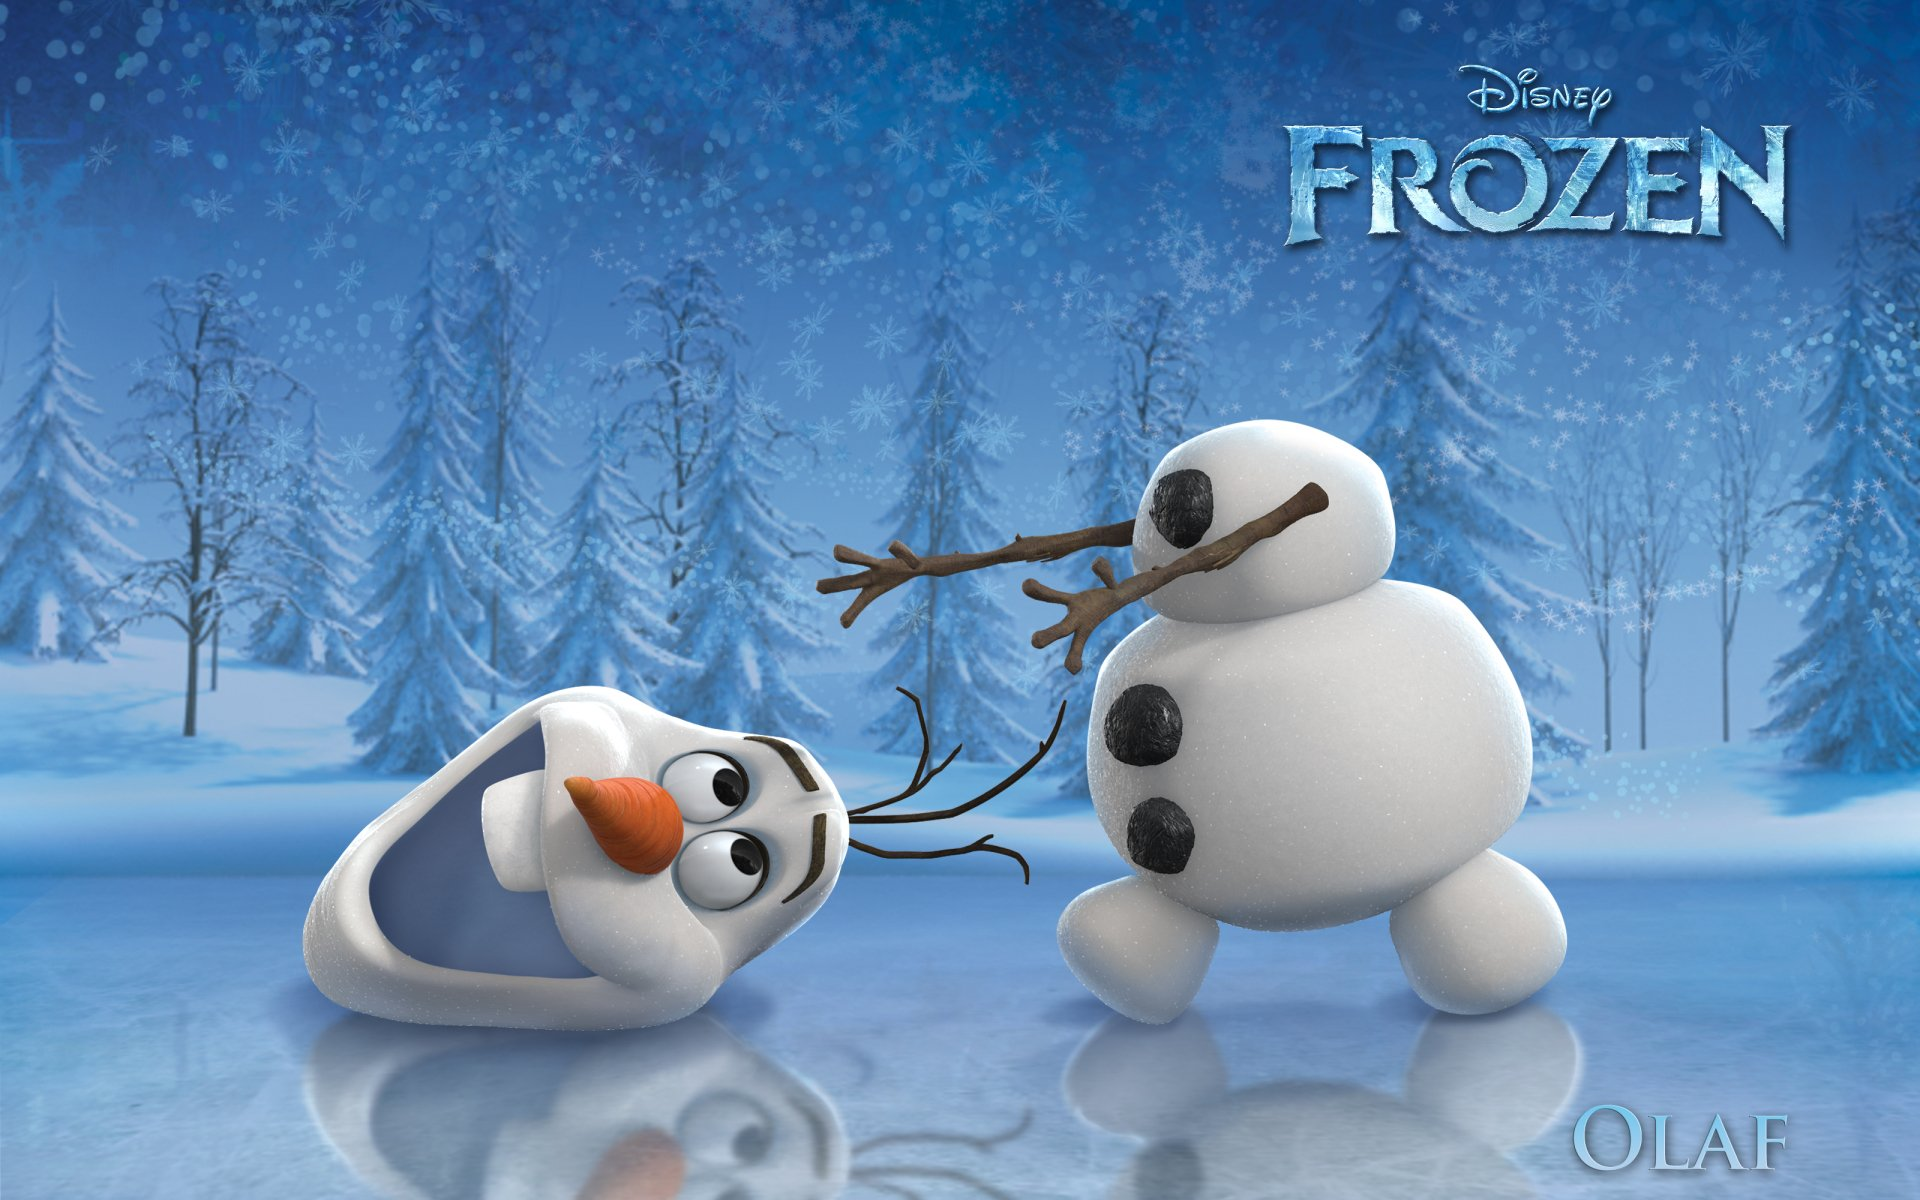 Movie - Frozen  Olaf (Frozen) Frozen (Movie) Wallpaper